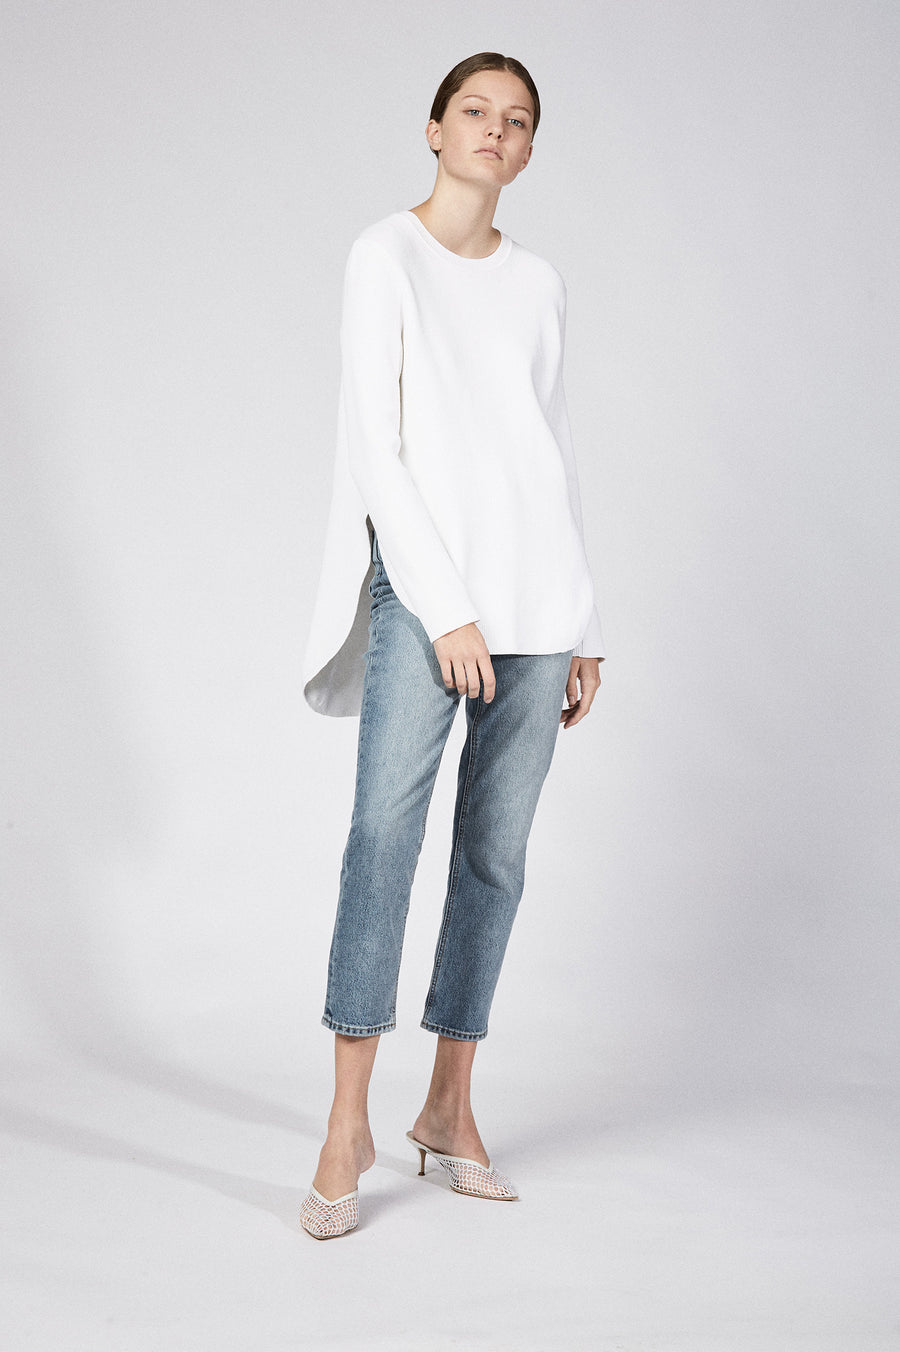 A quintessential basic for any season, this rib-knit top will be a go-to for years to come.